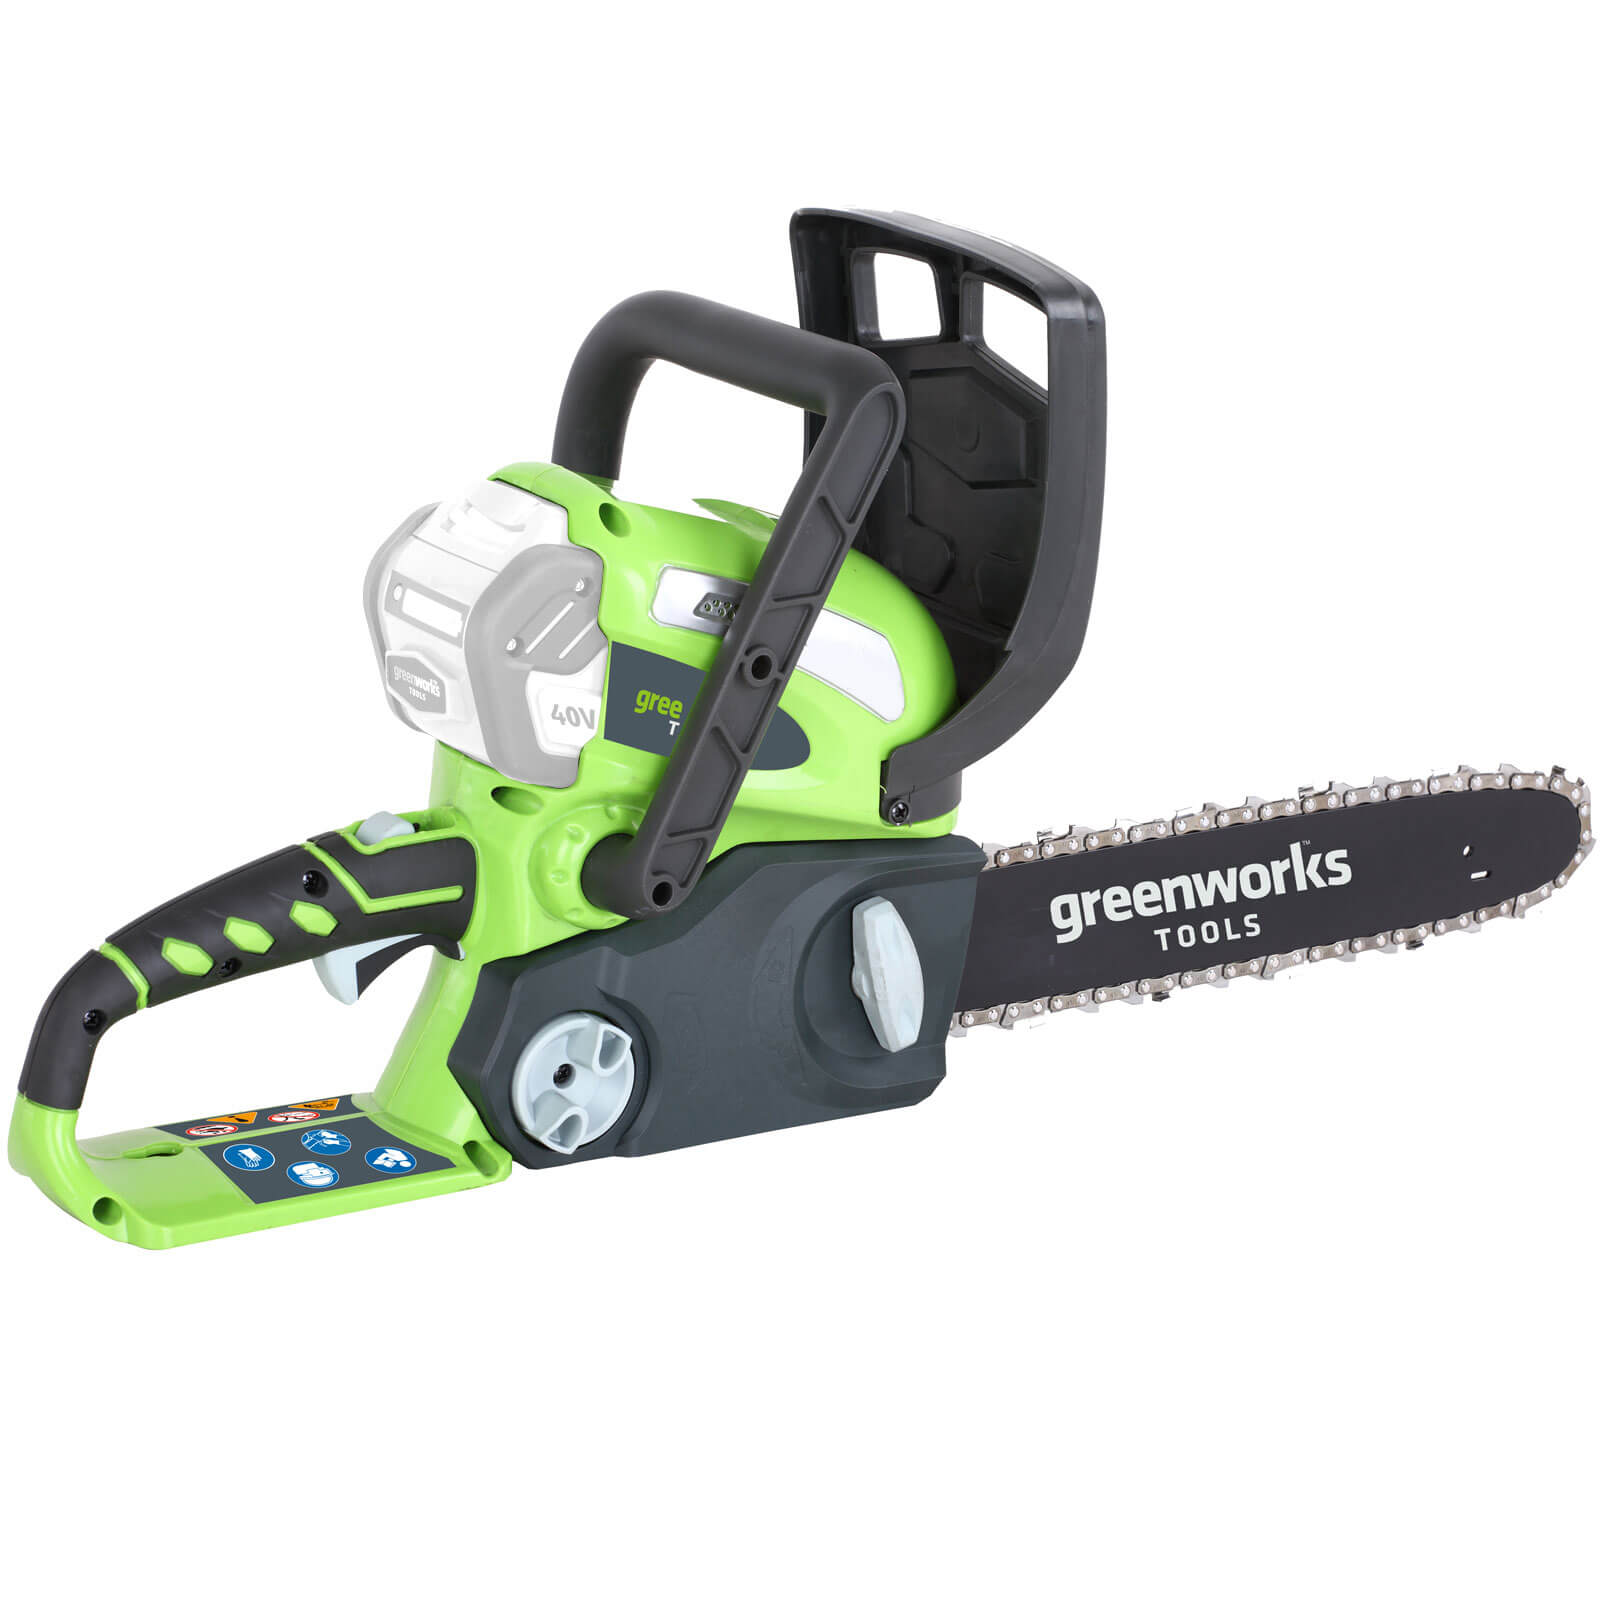 Greenworks G40CS30 40v Cordless Chainsaw 300mm No Batteries No Charger